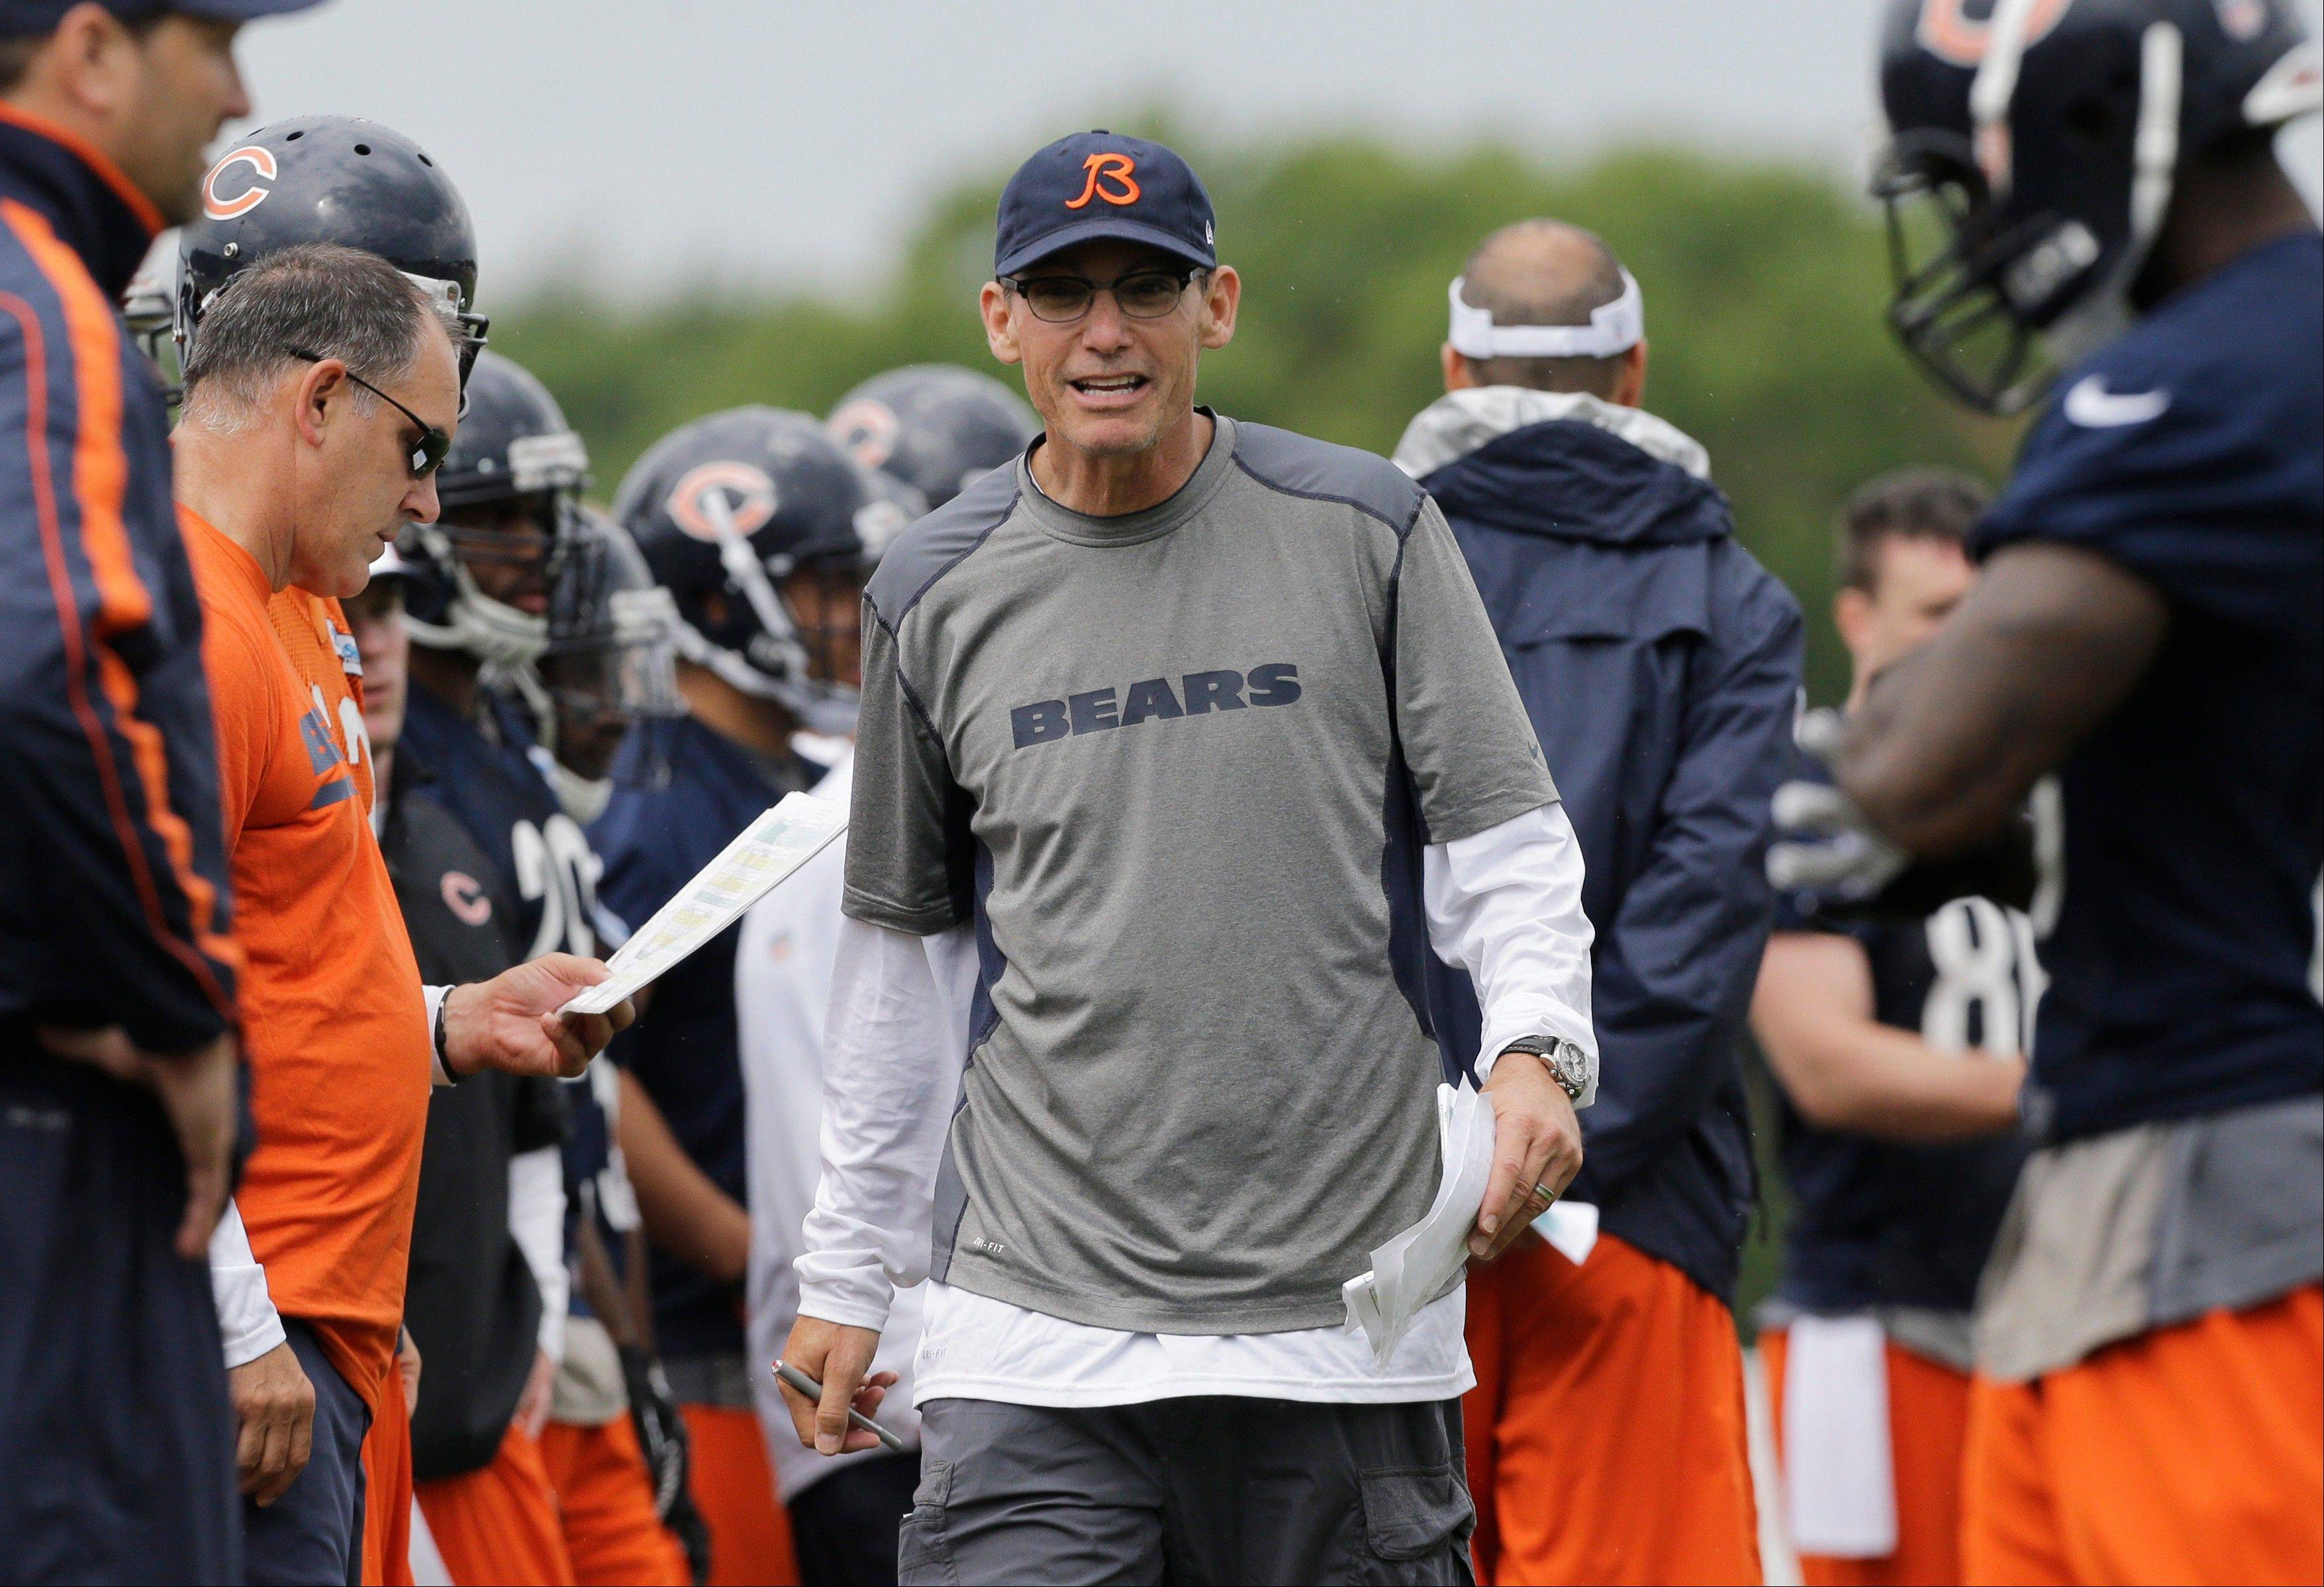 Chicago Bears head coach Marc Trestman talks to his team.